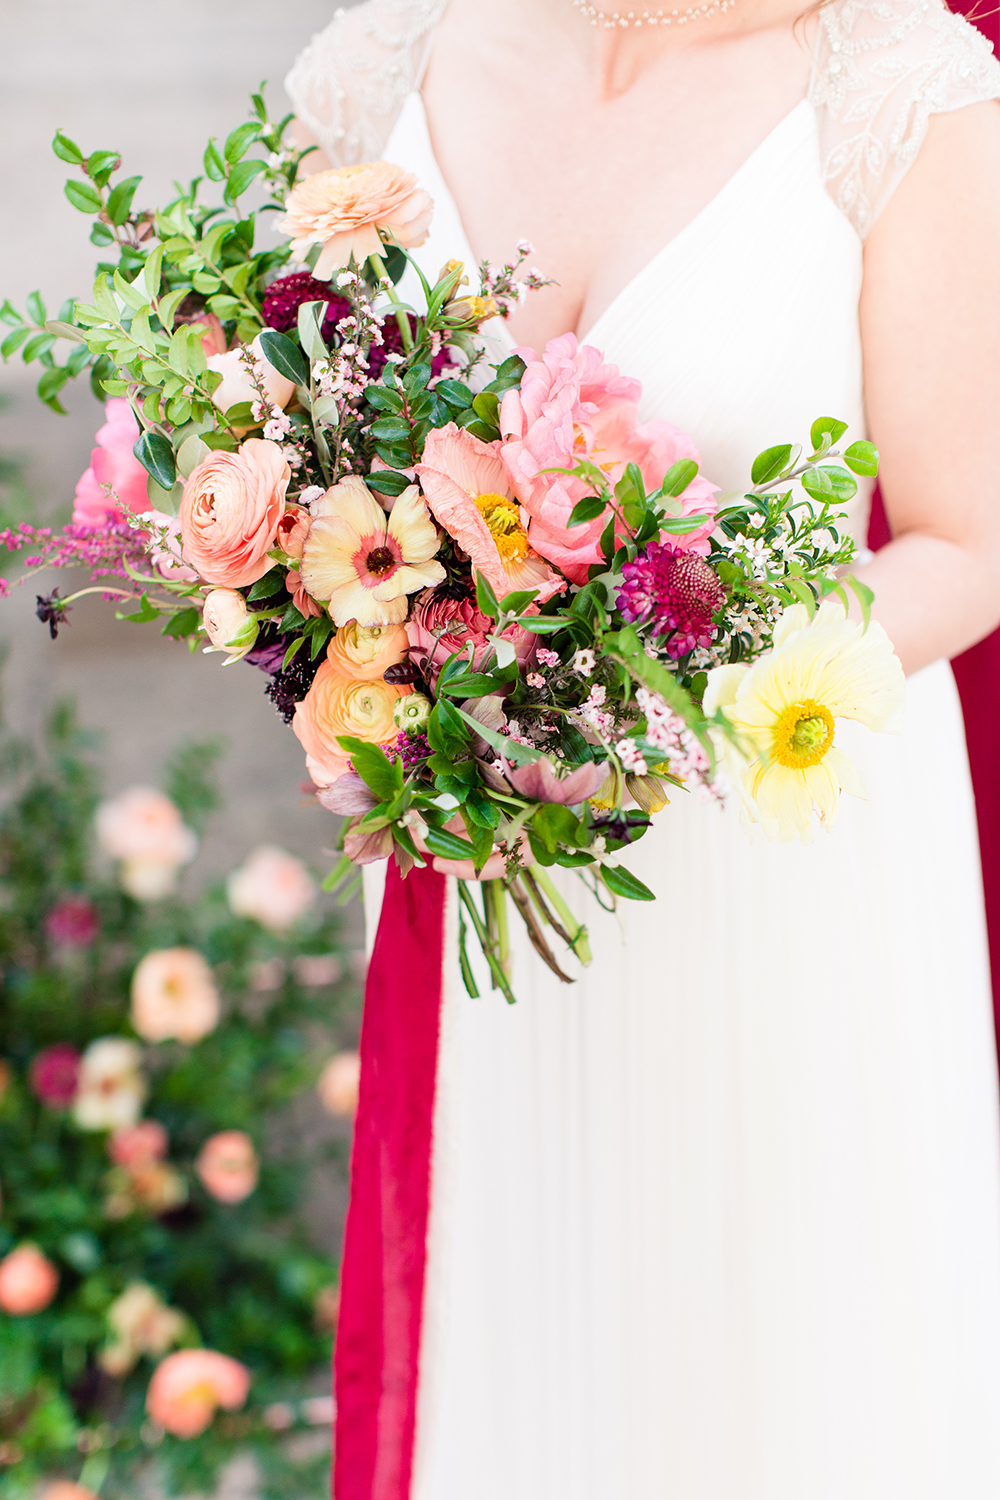 pink and yellow bouquets - photo by Lauren Lee Photography http://ruffledblog.com/modern-grecian-inspired-wedding-ideas